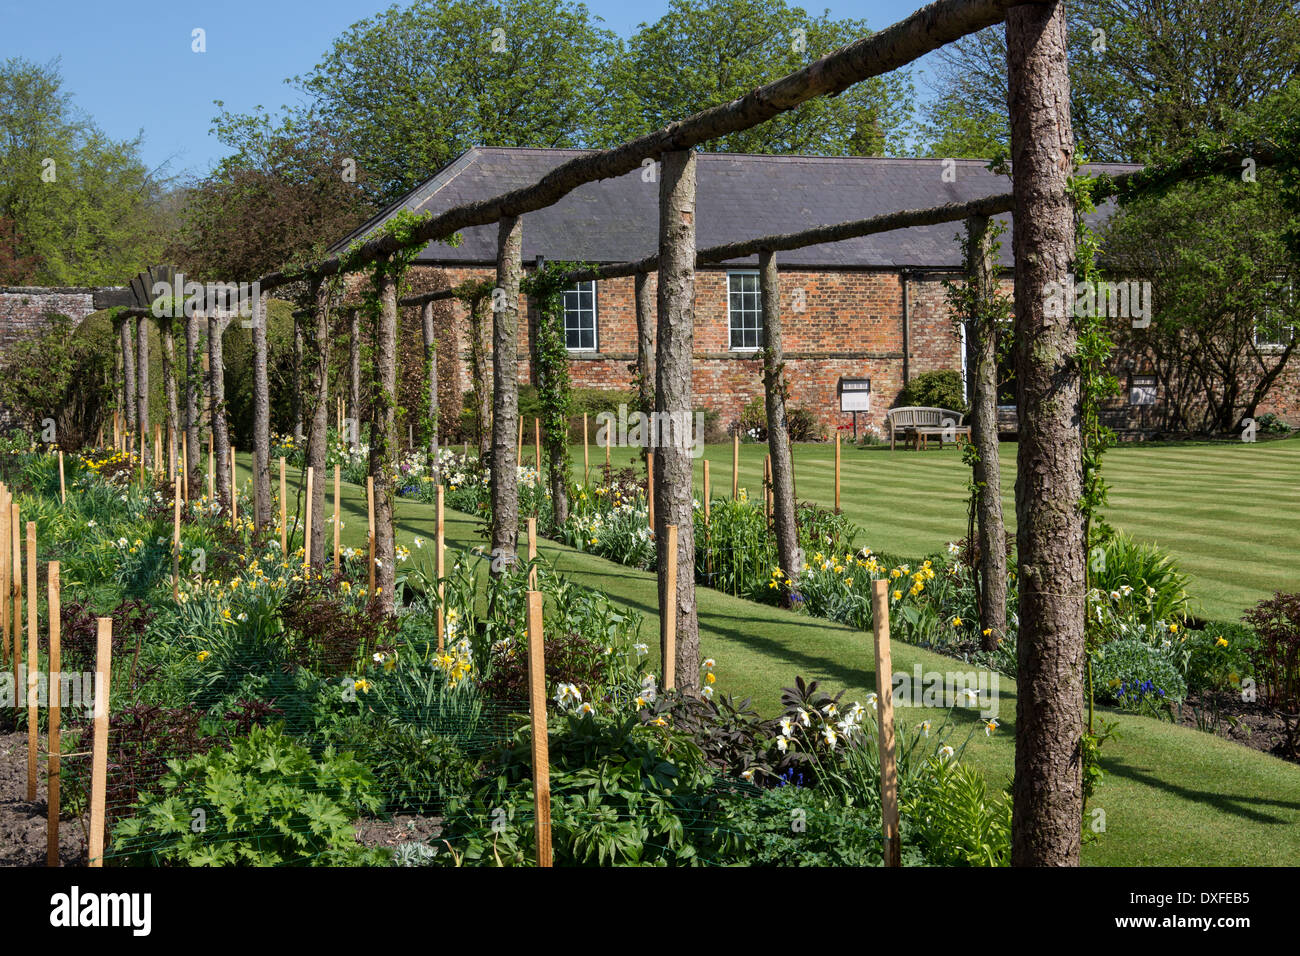 A large walled country garden in Spring time in North Yorkshire in the United Kingdom. - Stock Image